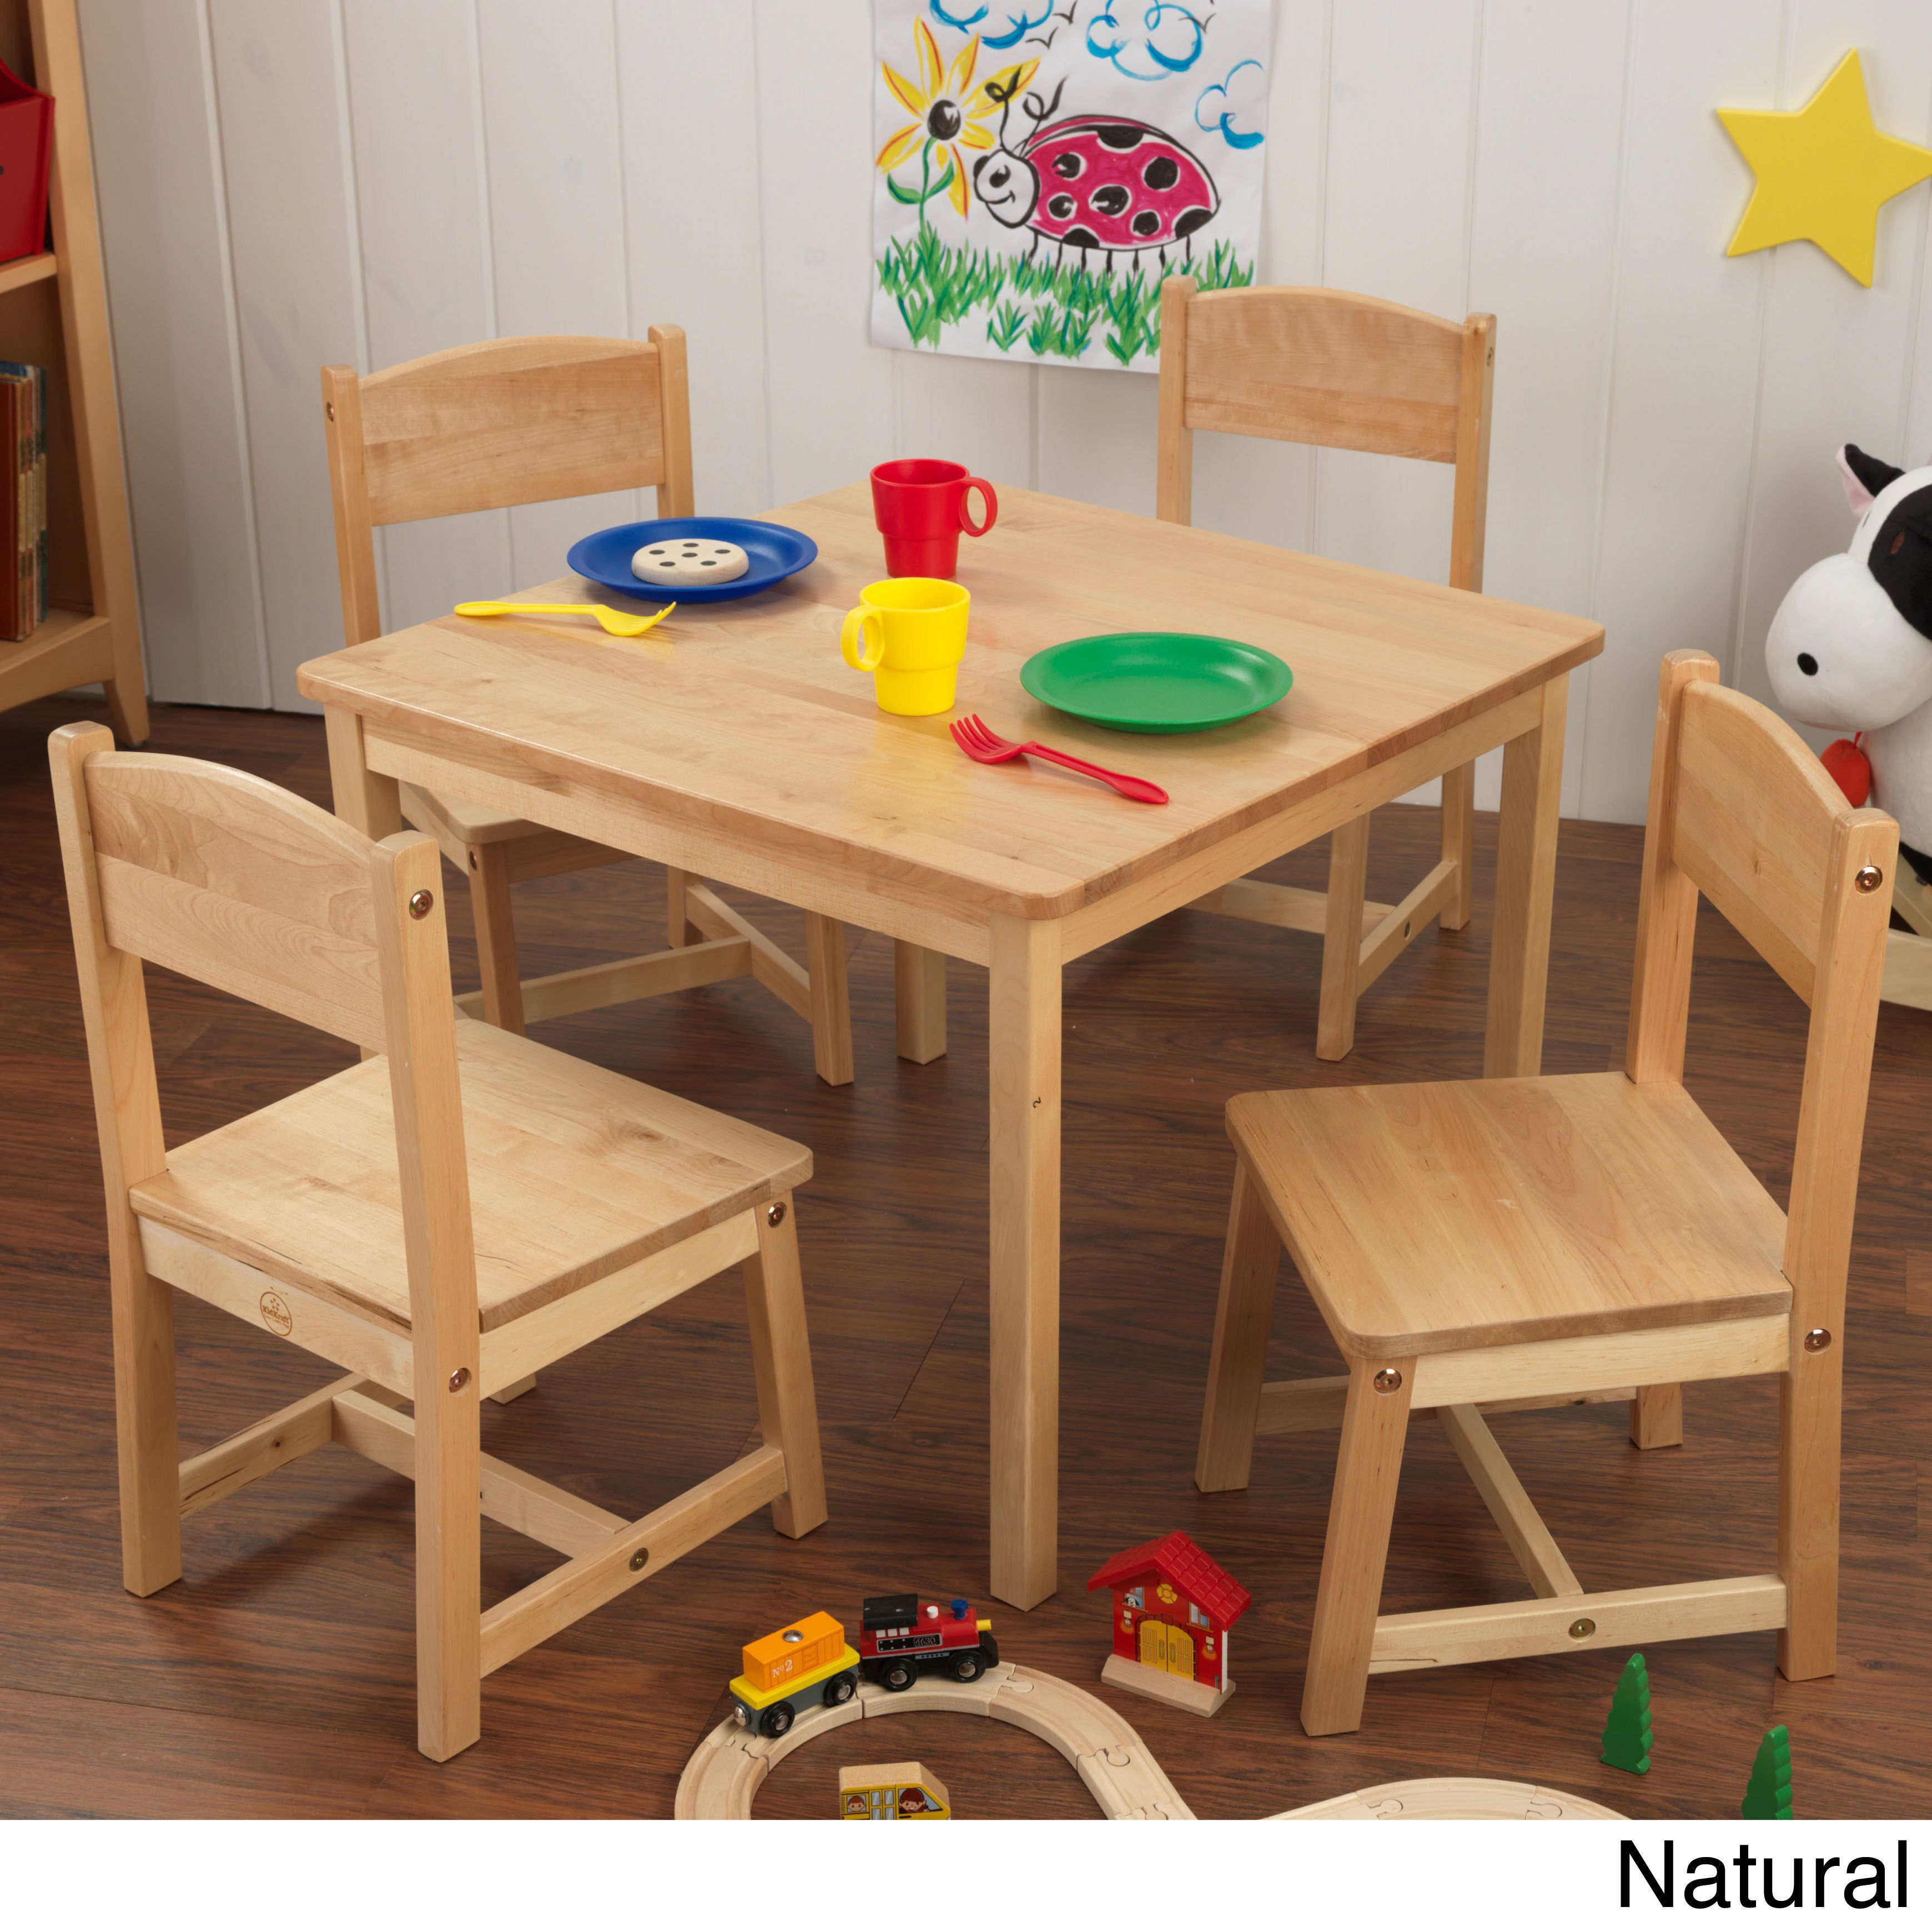 kidkraft farmhouse table and chair set espresso gaming with pedestal 5 piece chairs natural finish brown